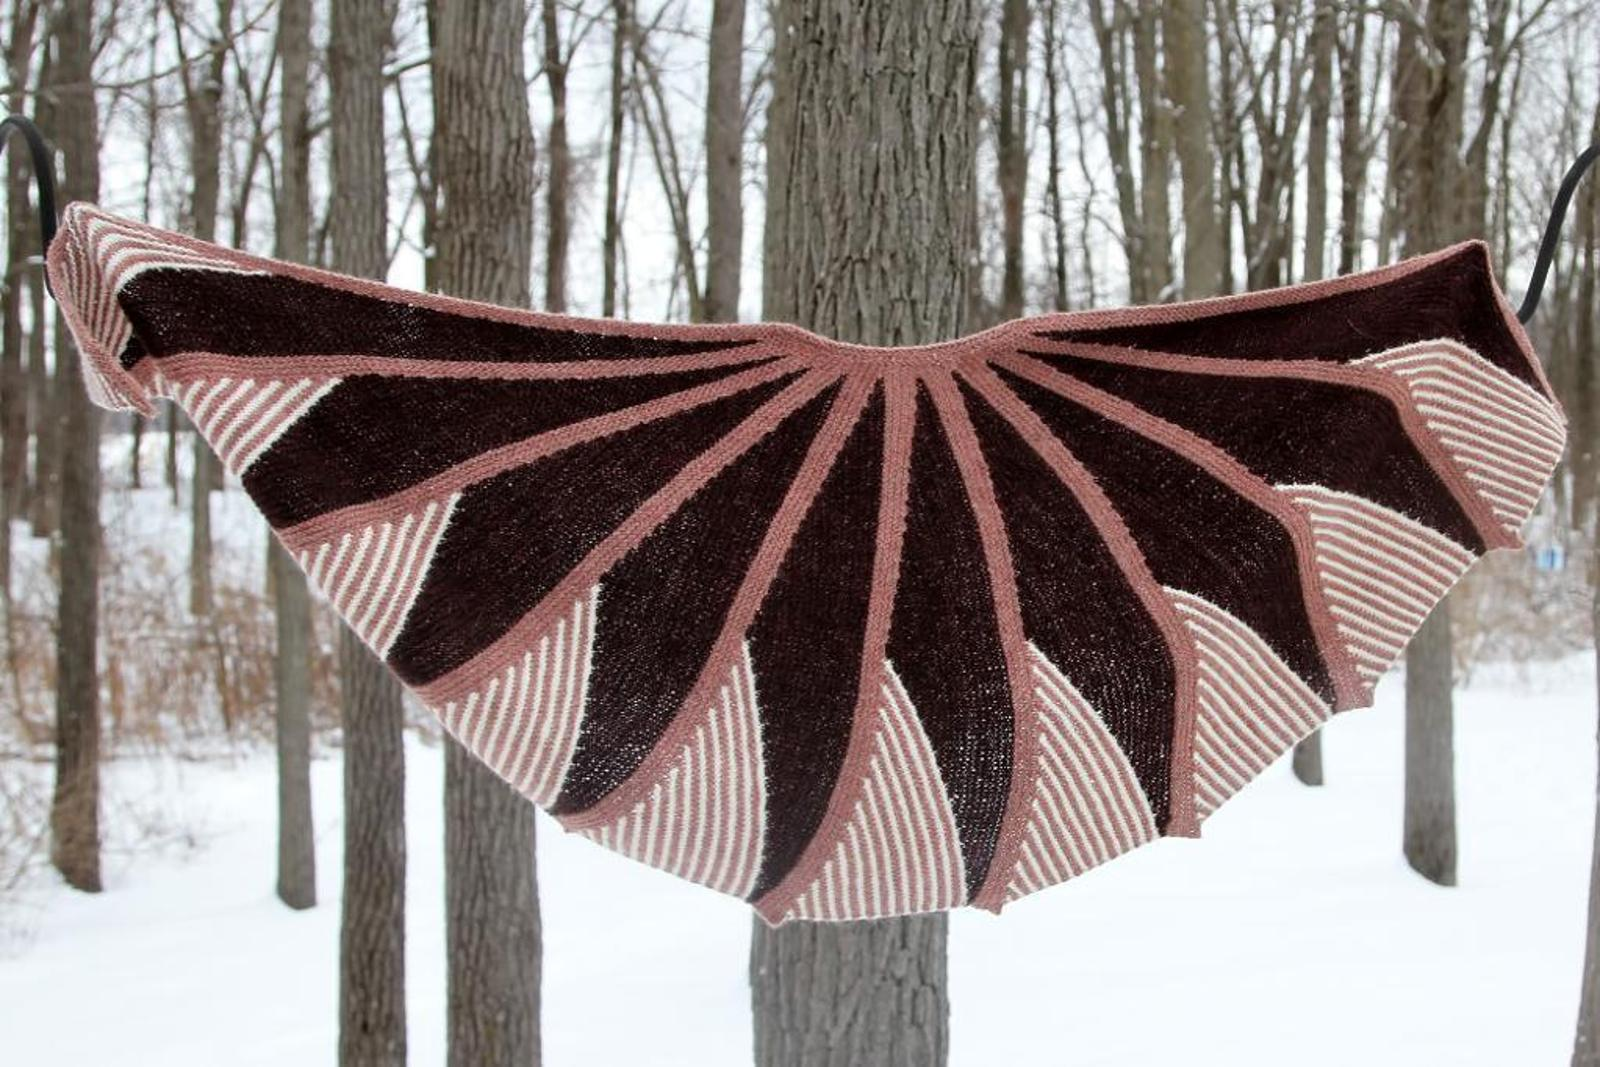 Short Row Shawl Knitting Pattern